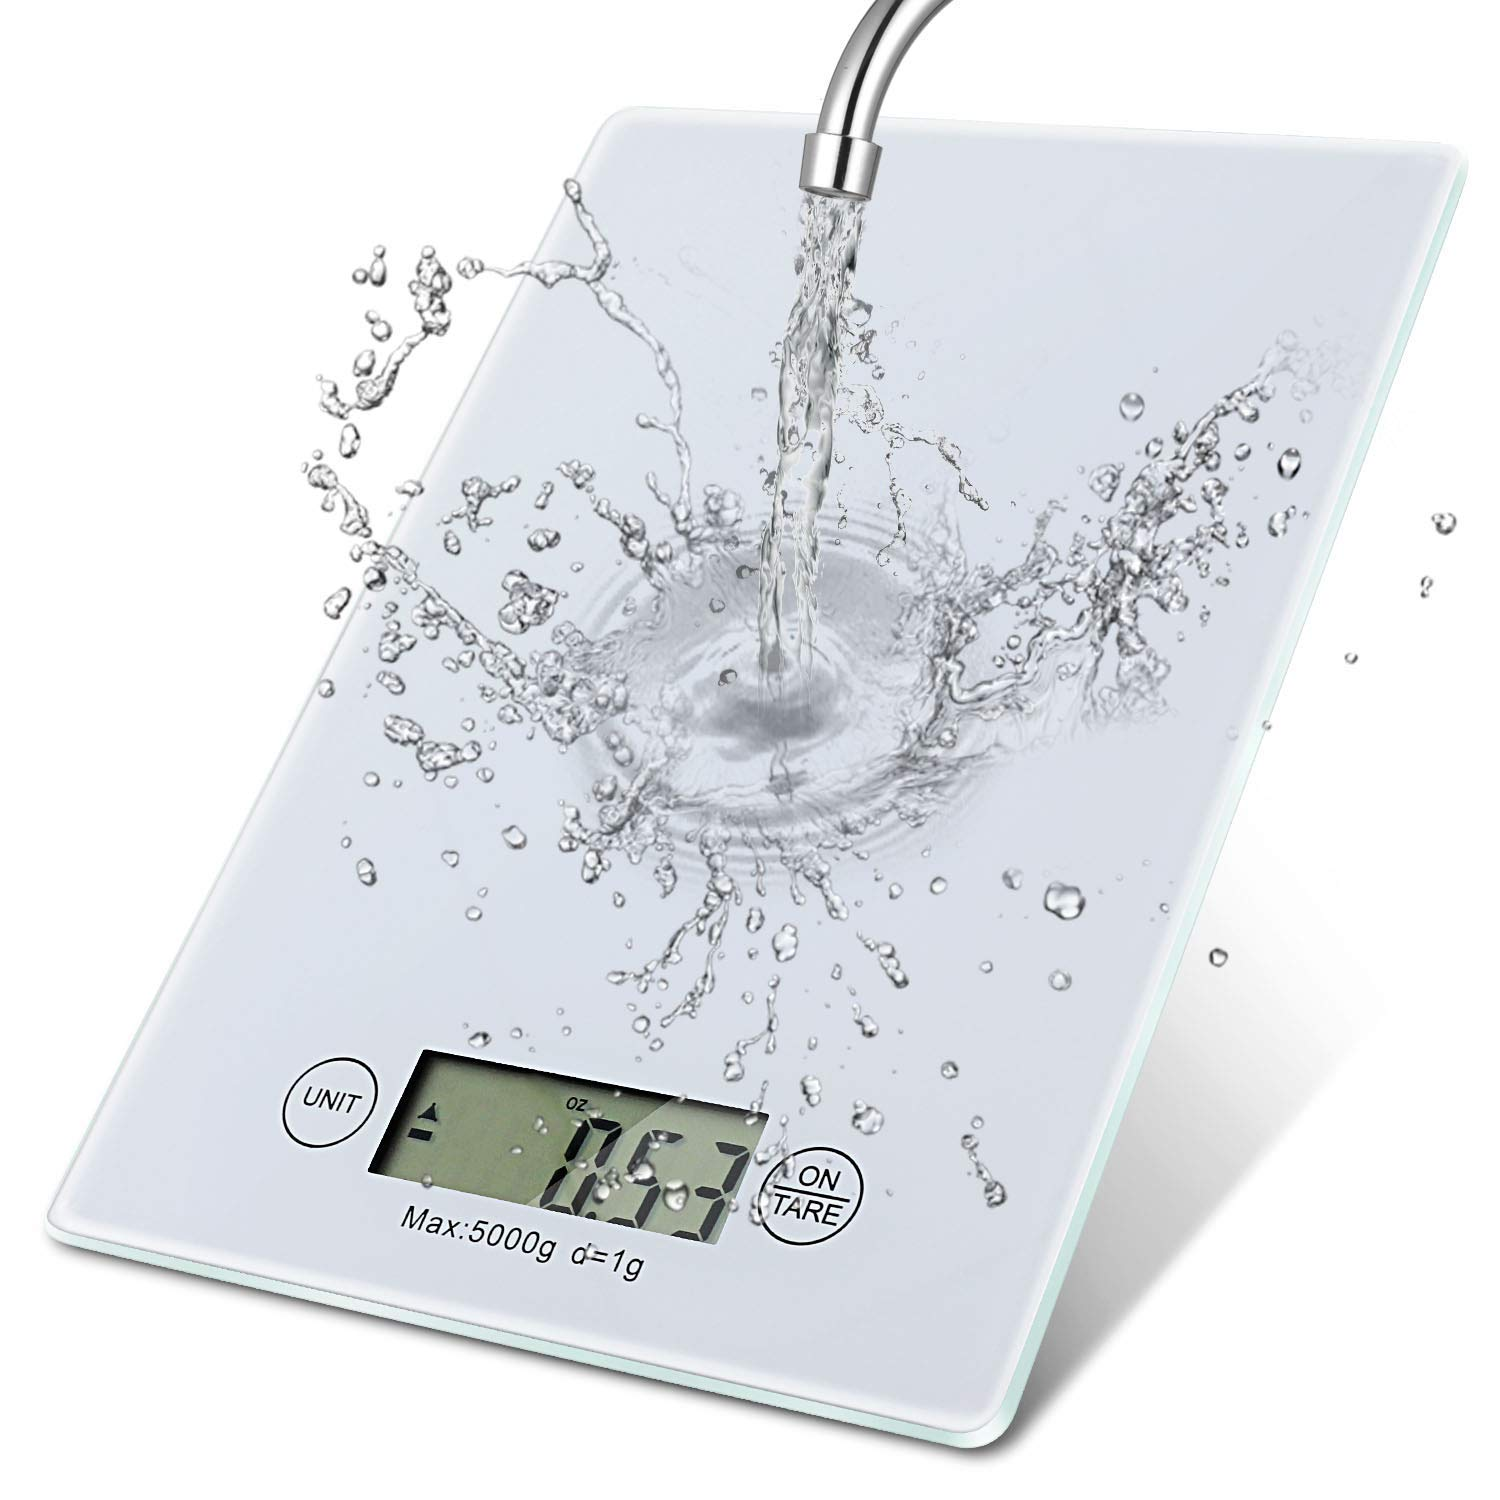 Food Scale Tempered Glass Waterproof Digital Kitchen Weight Grams Ounces Oz Cooking Baking High Precision Target in Grams Ounces Range from 1g-5000g Tare Function